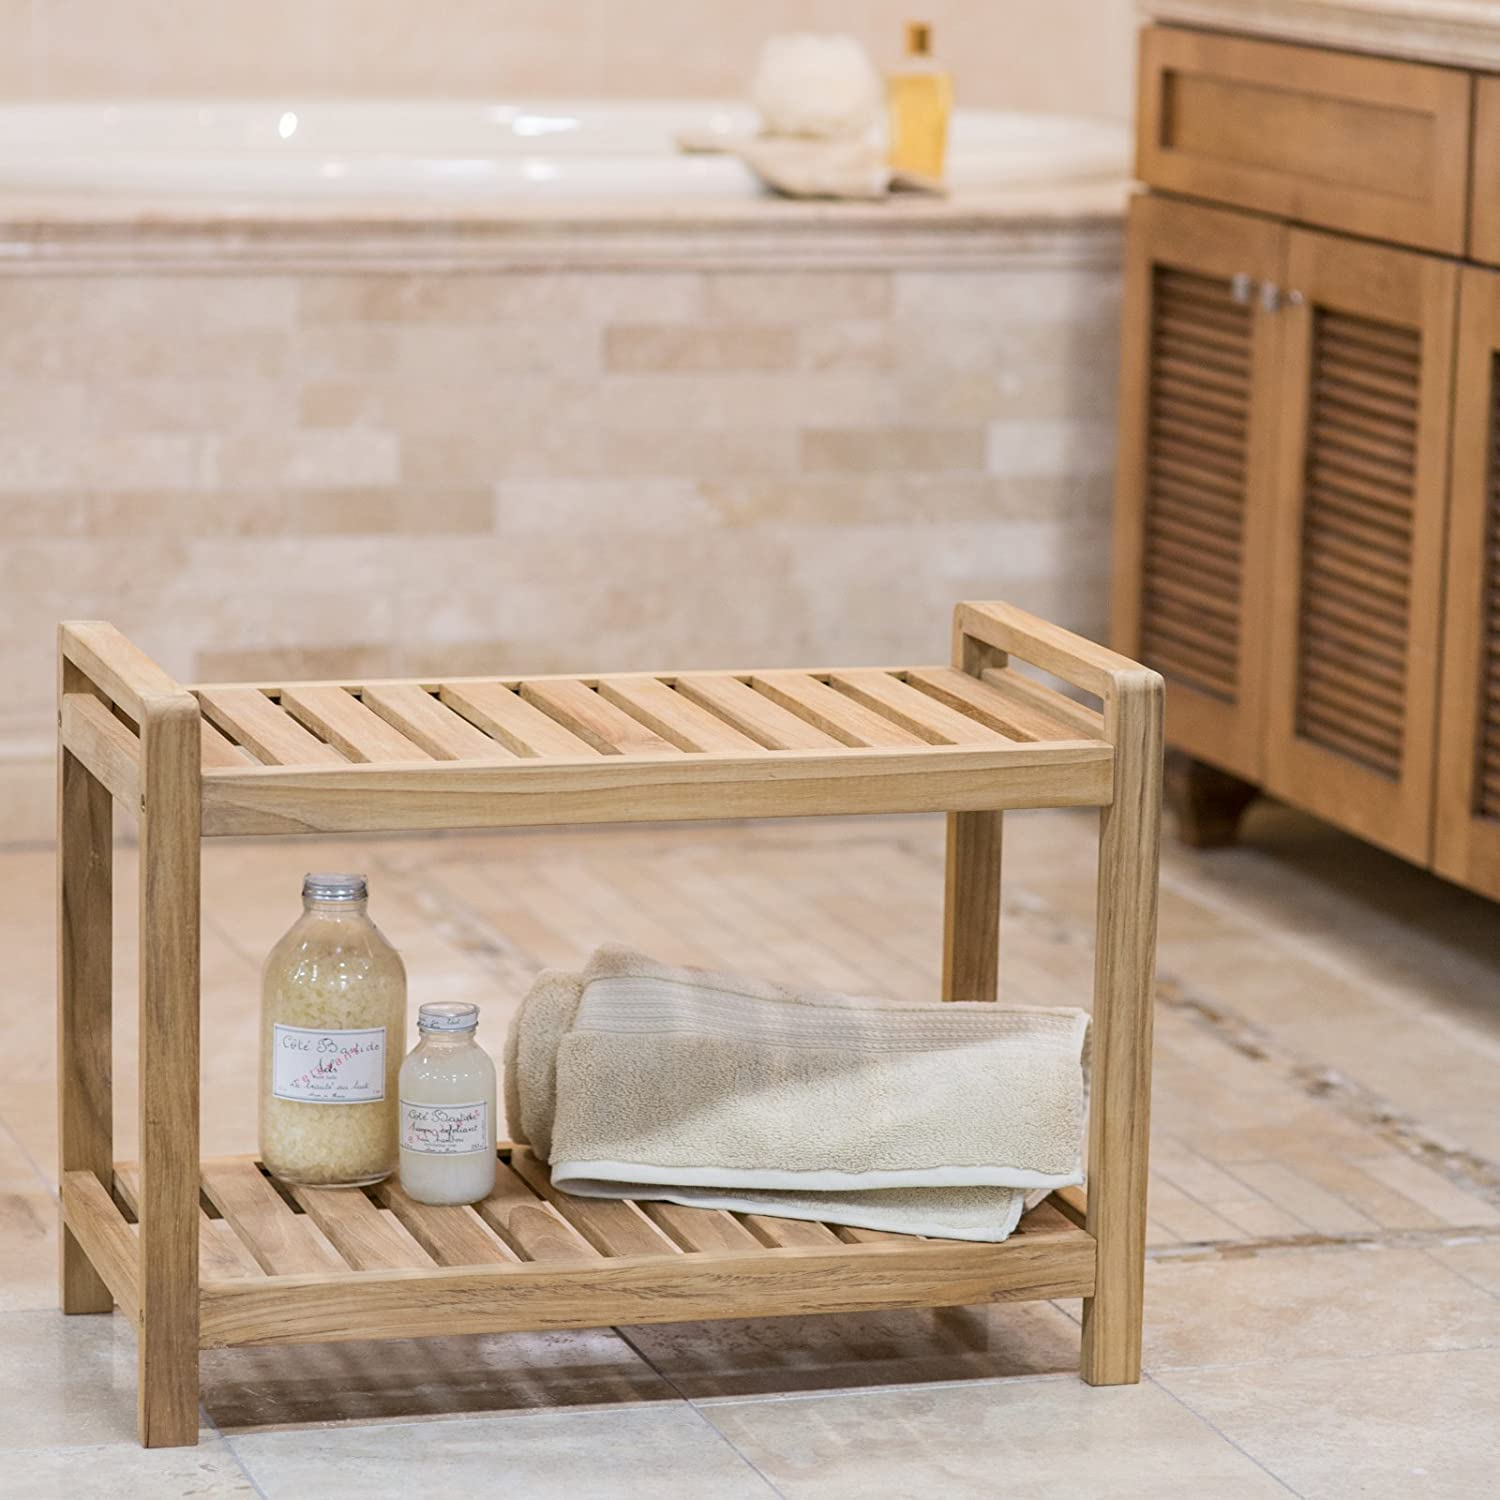 Amazon.com: Belham Living Teak Shower Bench: Home & Kitchen